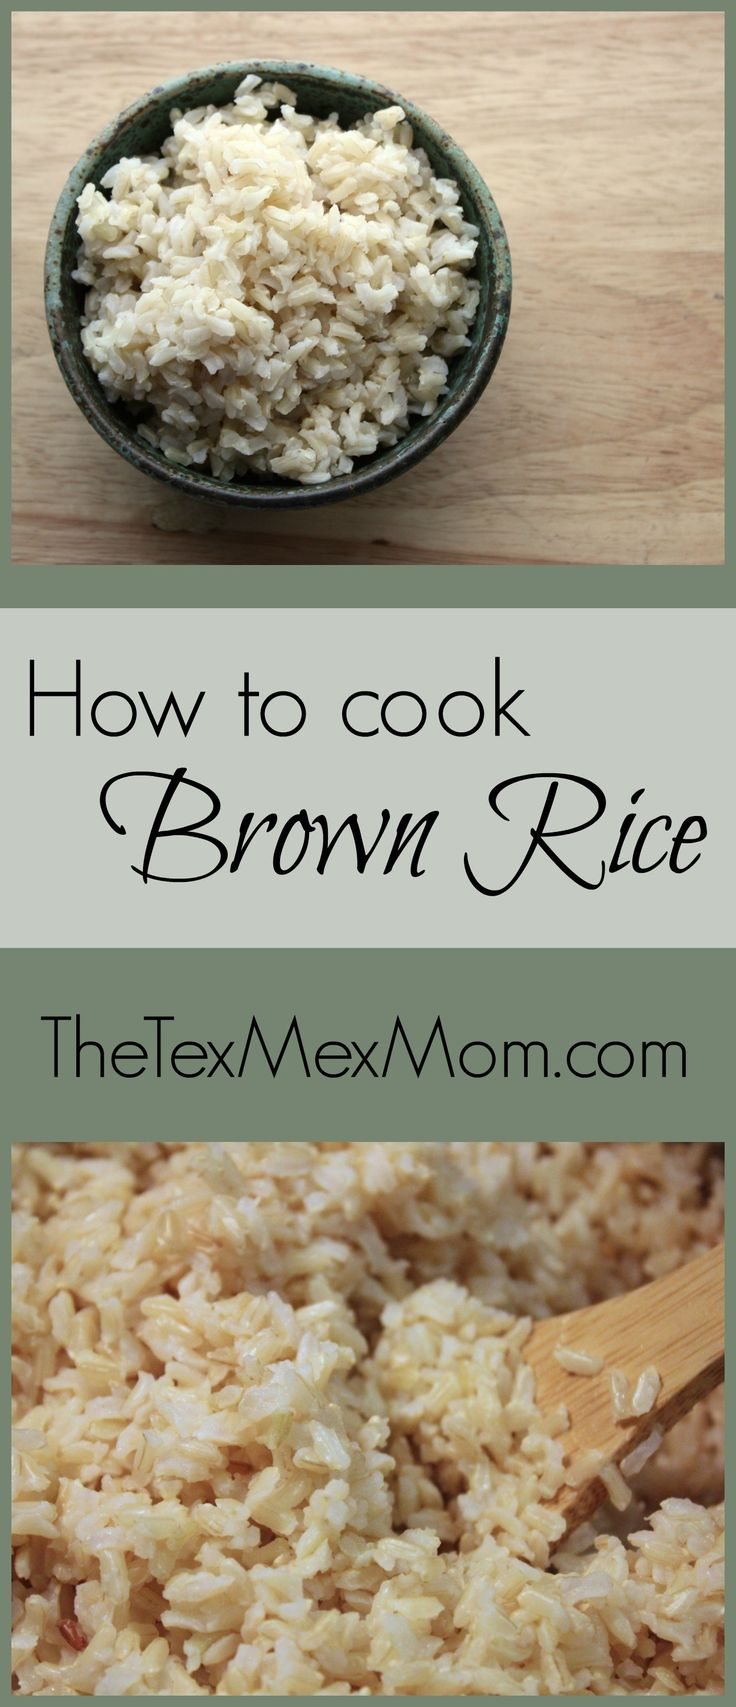 Hello! Today I want to share with you how I cook brown rice. I admit it's not the most exciting recipe ever – after all, you just need rice and water haha – but knowing how to coo…